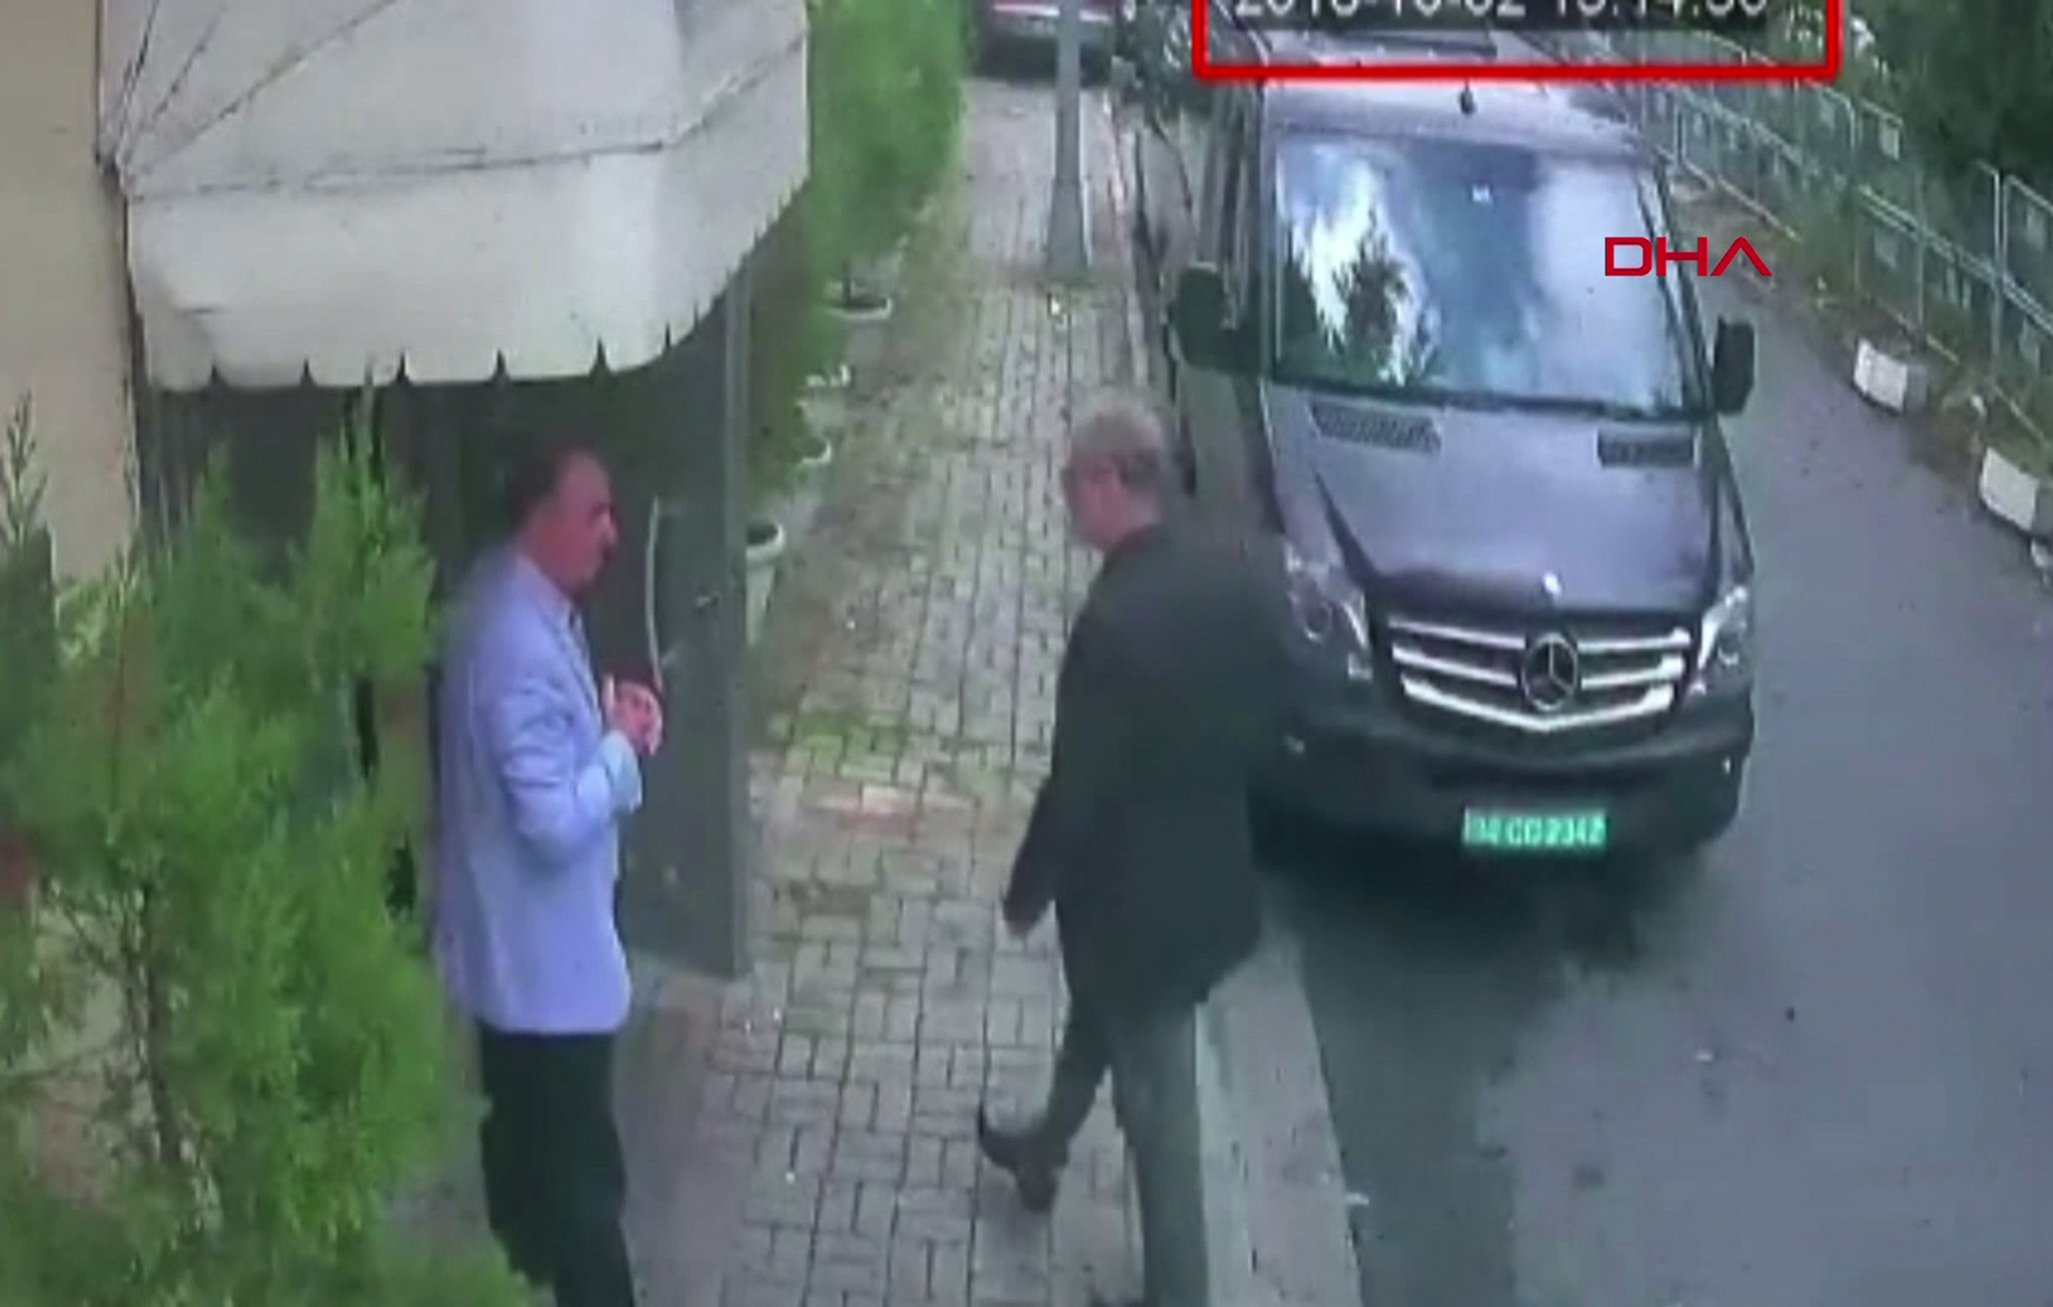 Jamal Khashoggi's murder is another test for the West. Will it fail that one too?